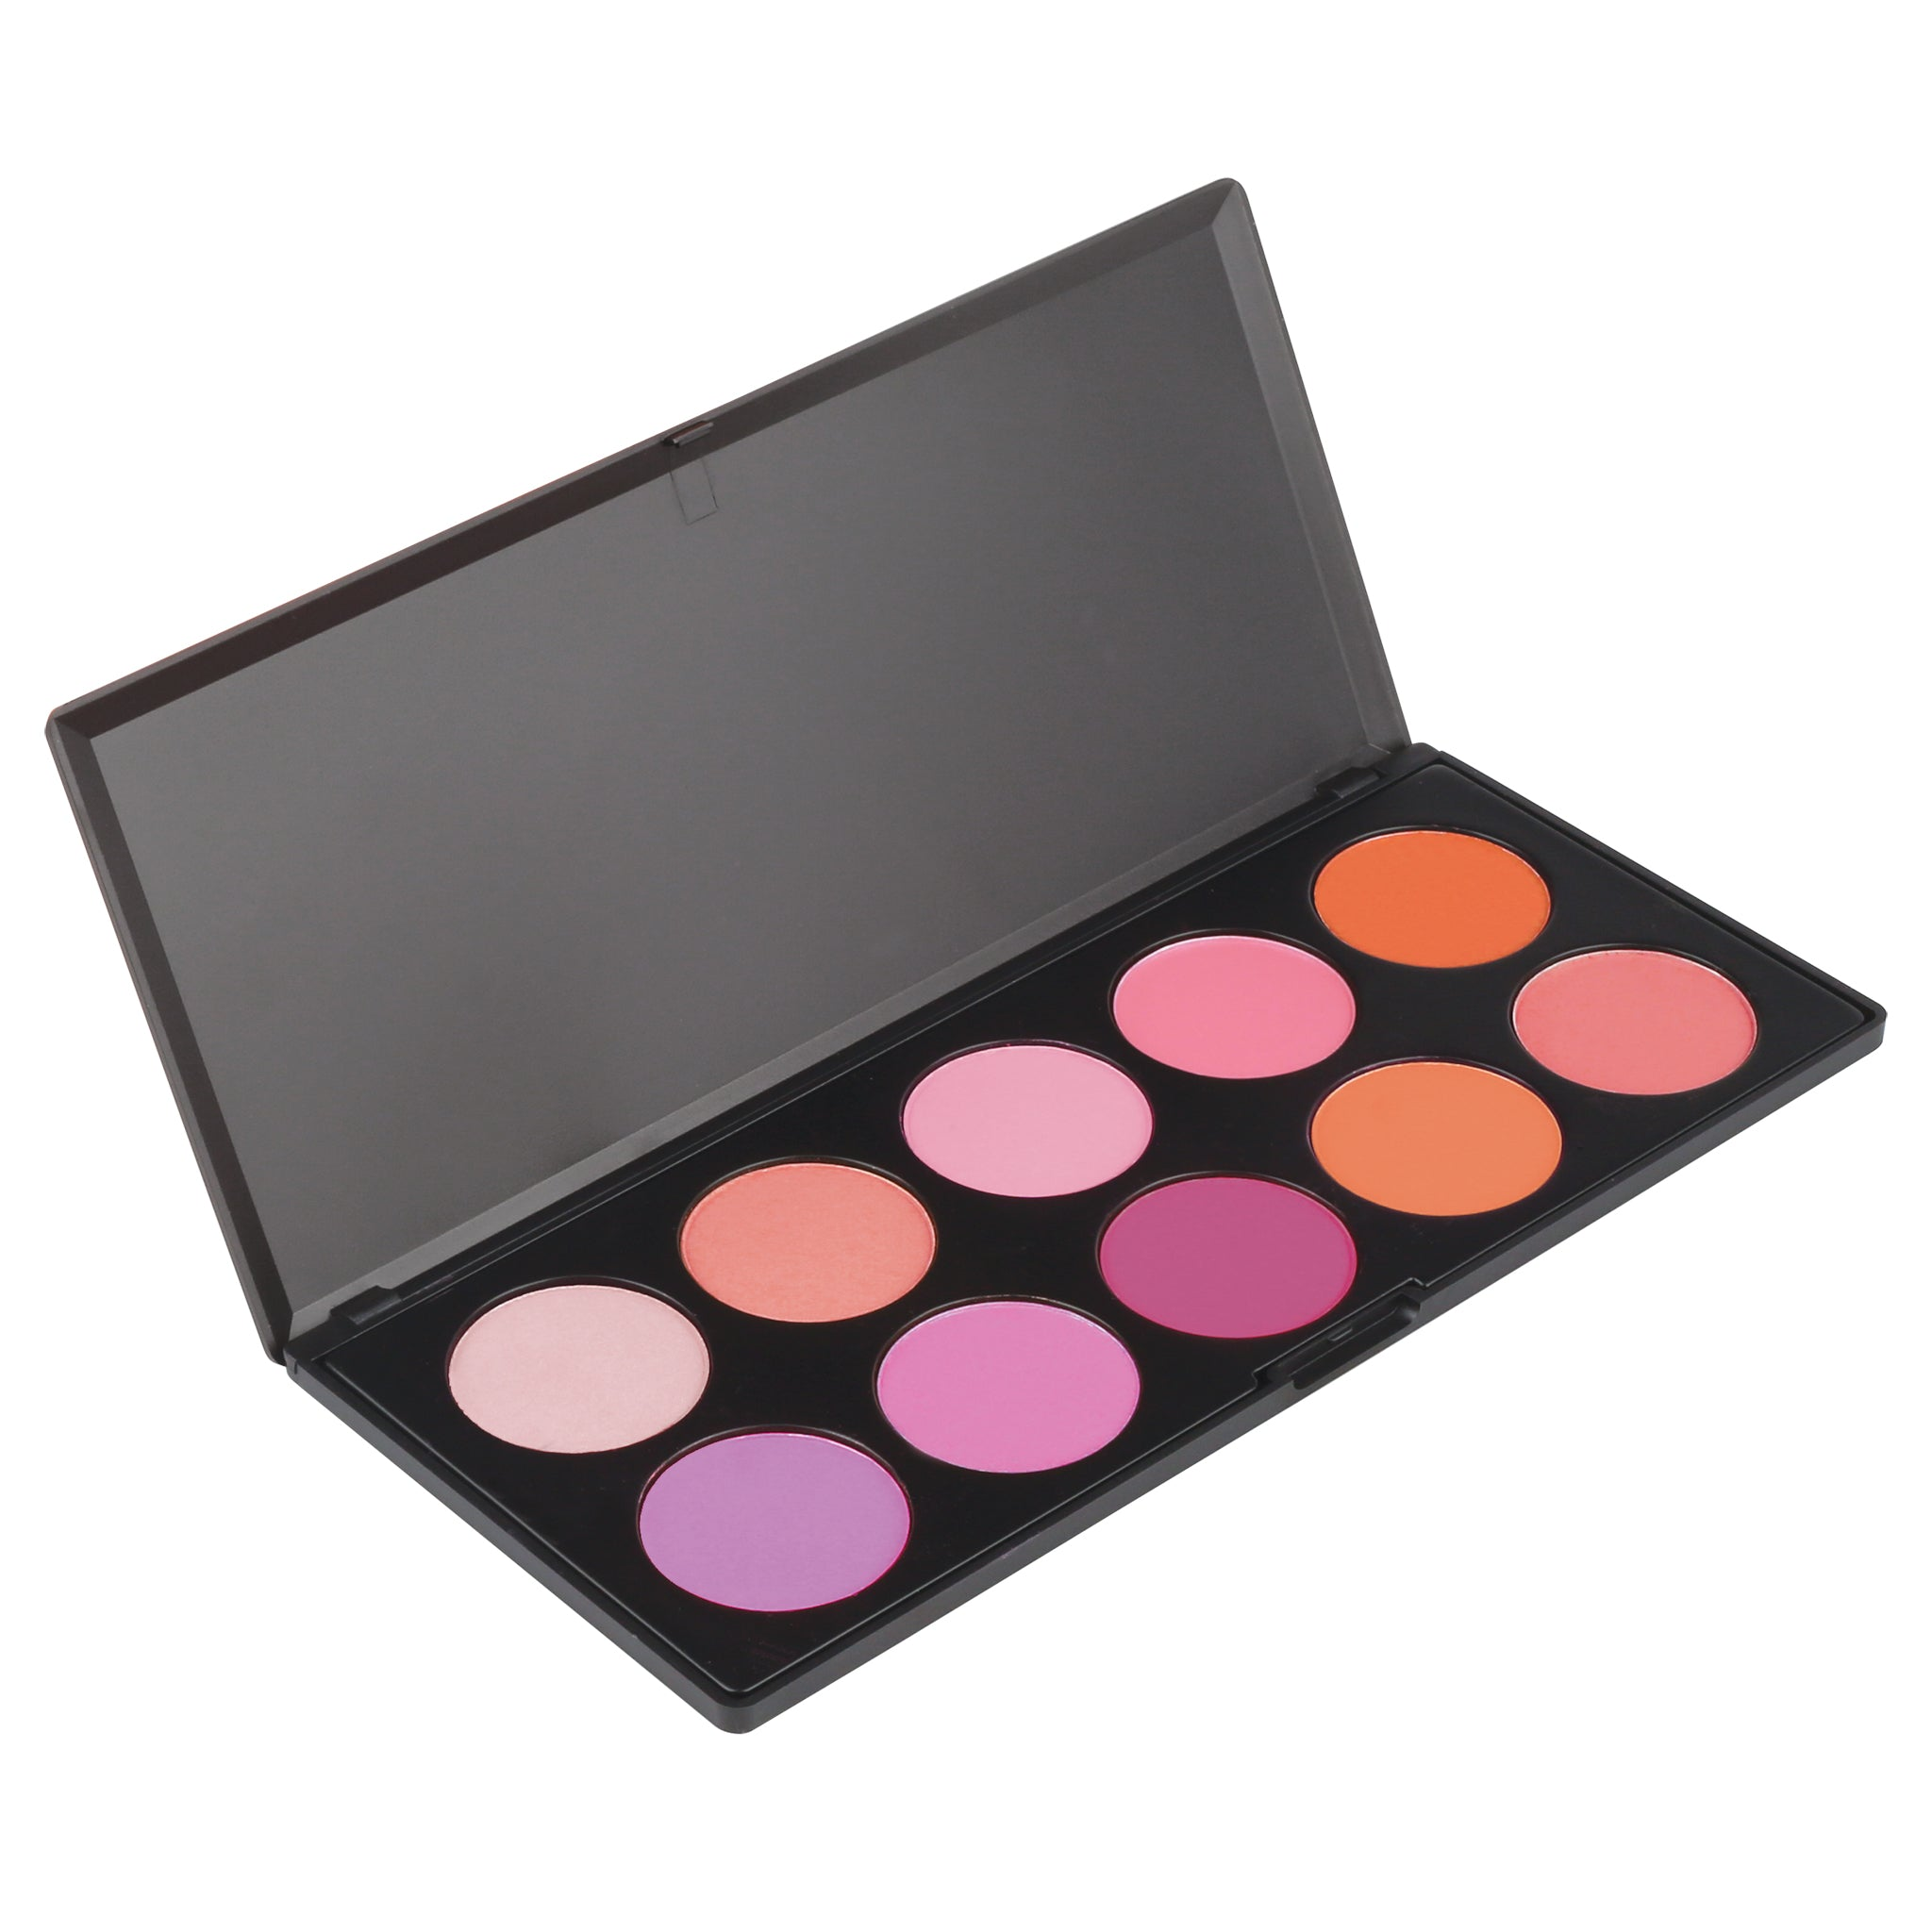 Makeup - Blush Palette - 10 Color Blush Palette Too By Coastal Scents